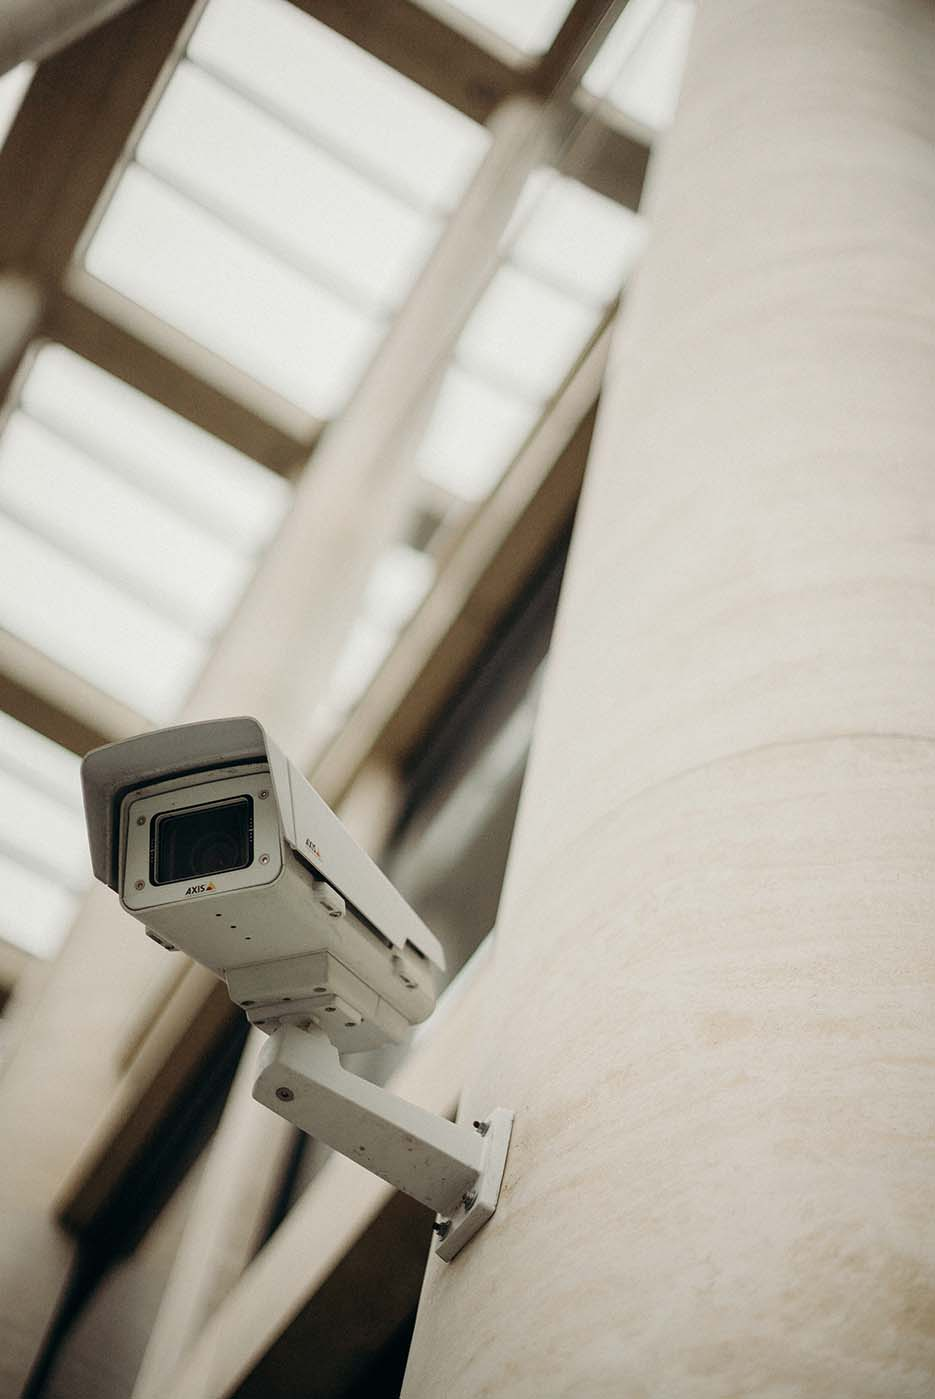 CCTV Security System in a business